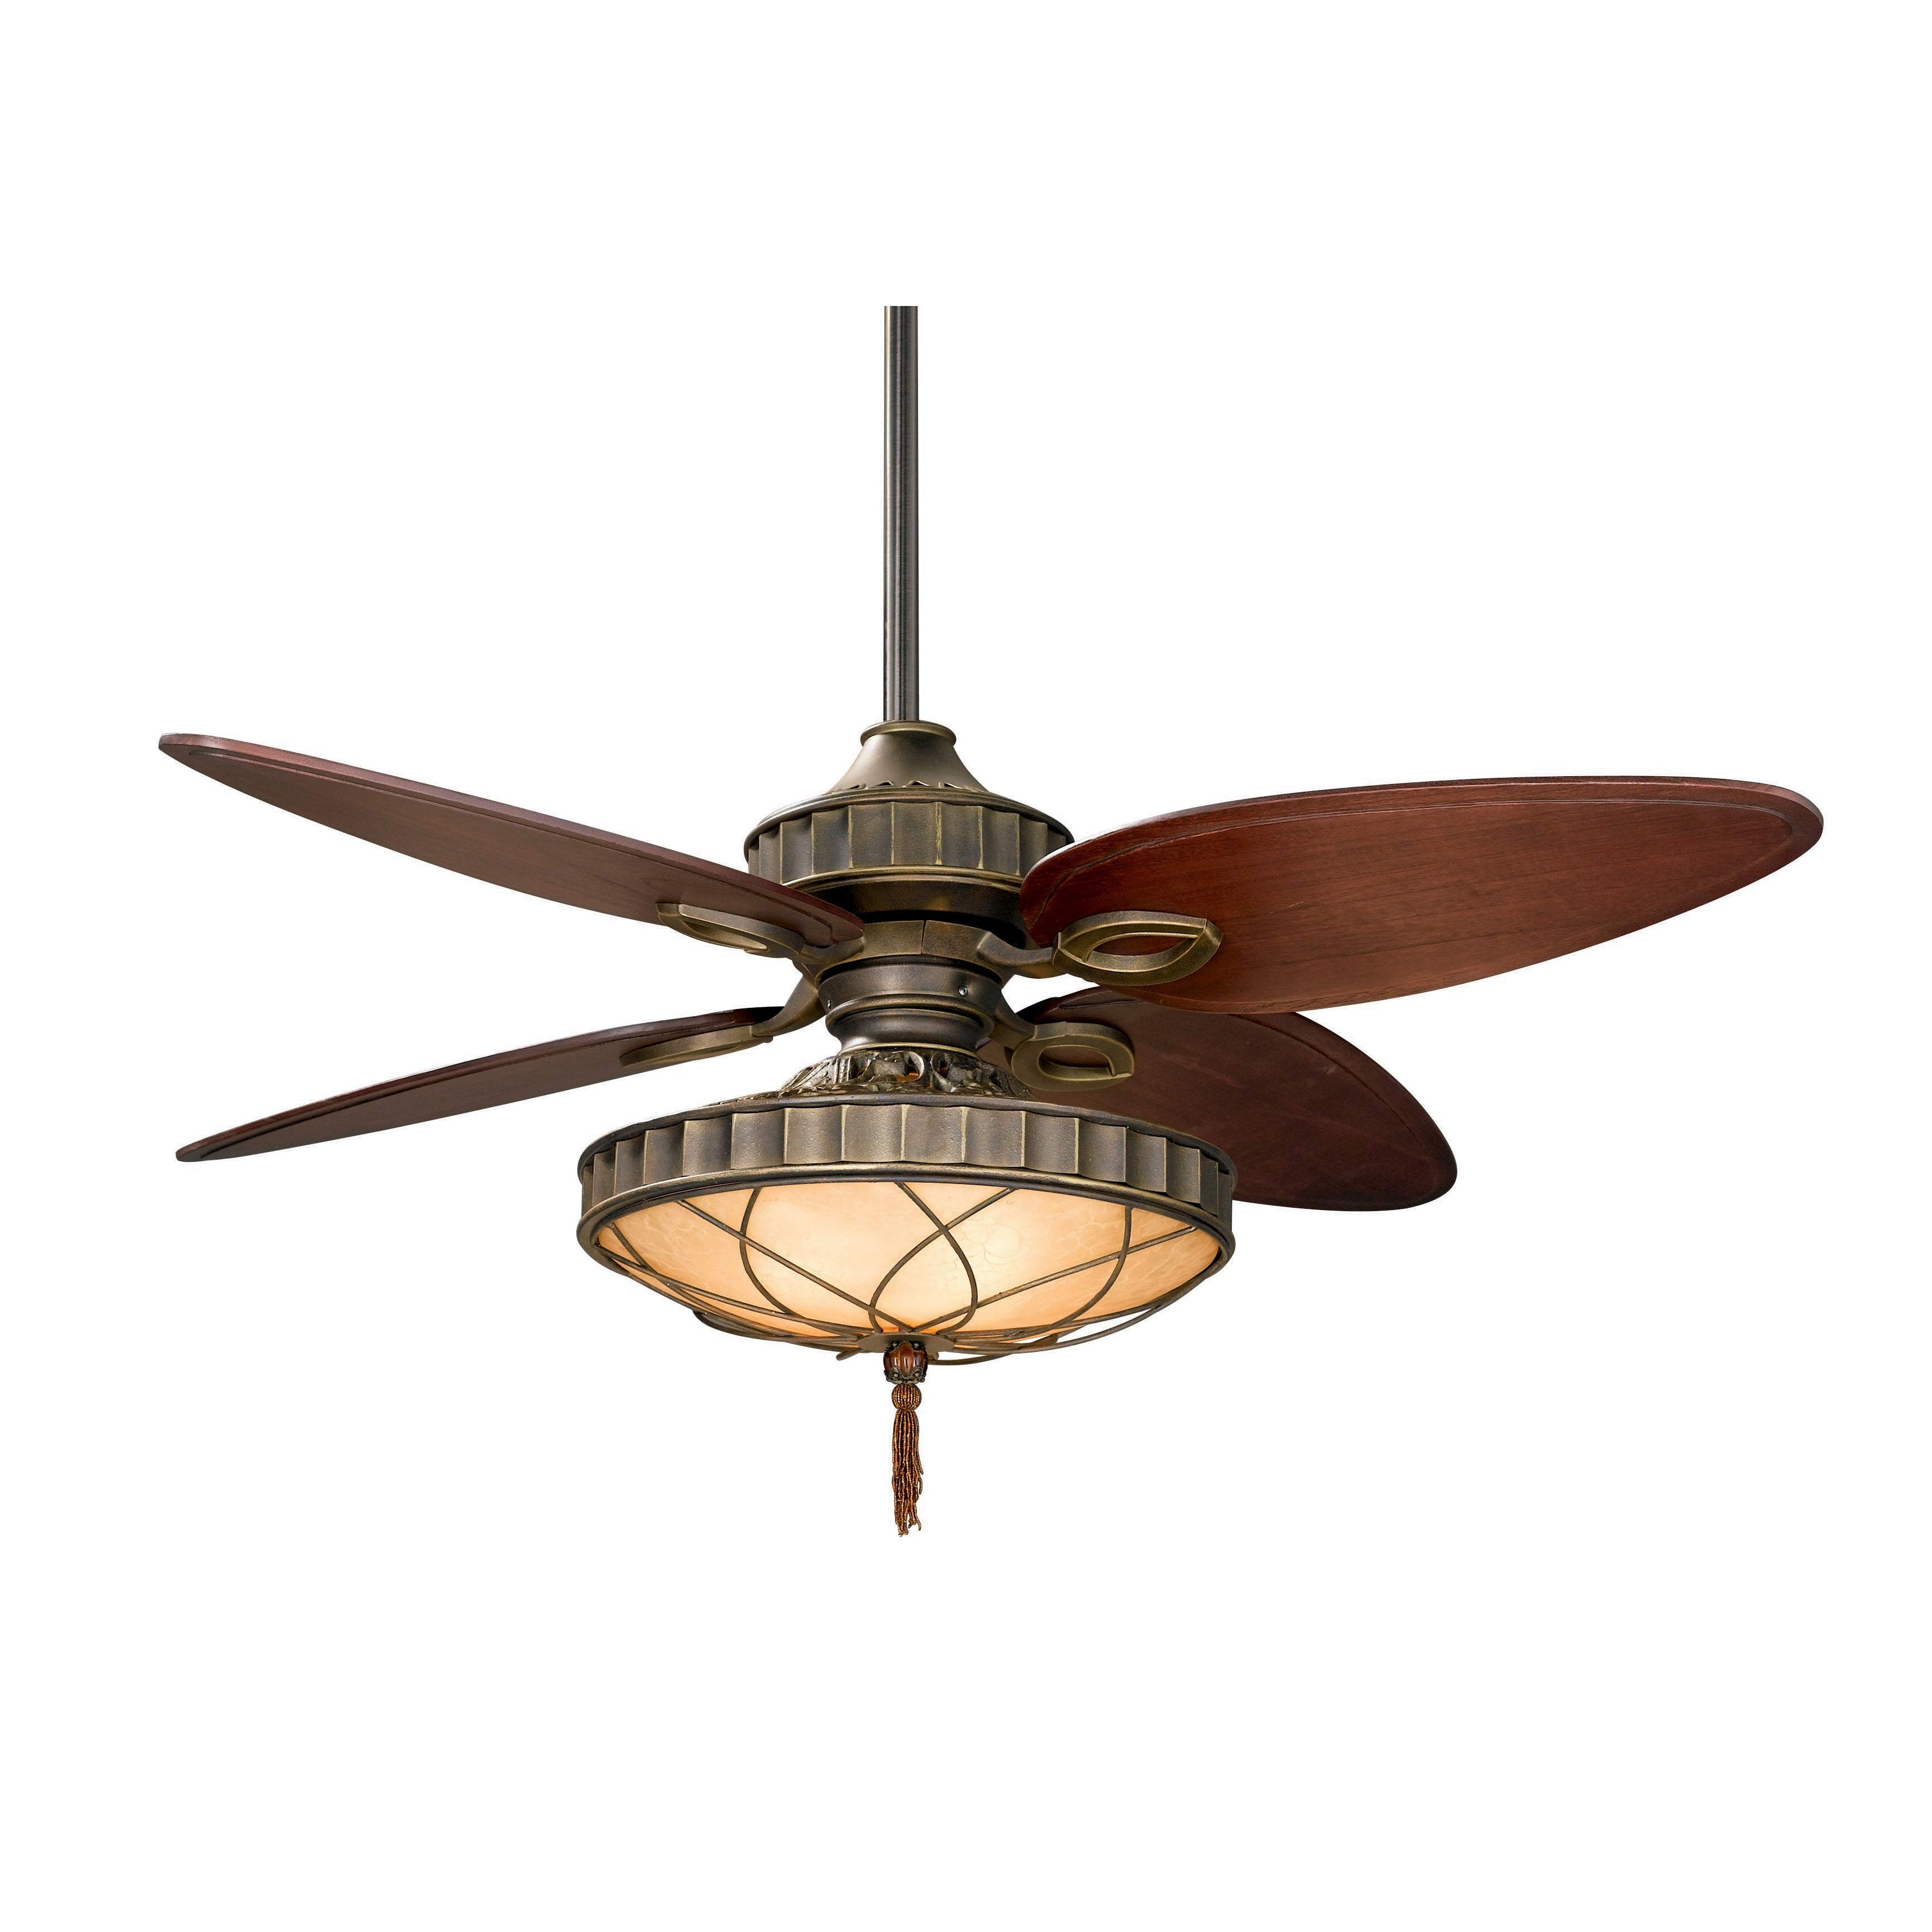 Fanimation Bayhill 56-inch Venitian Bronze 3-light Ceiling Fan at Sears.com